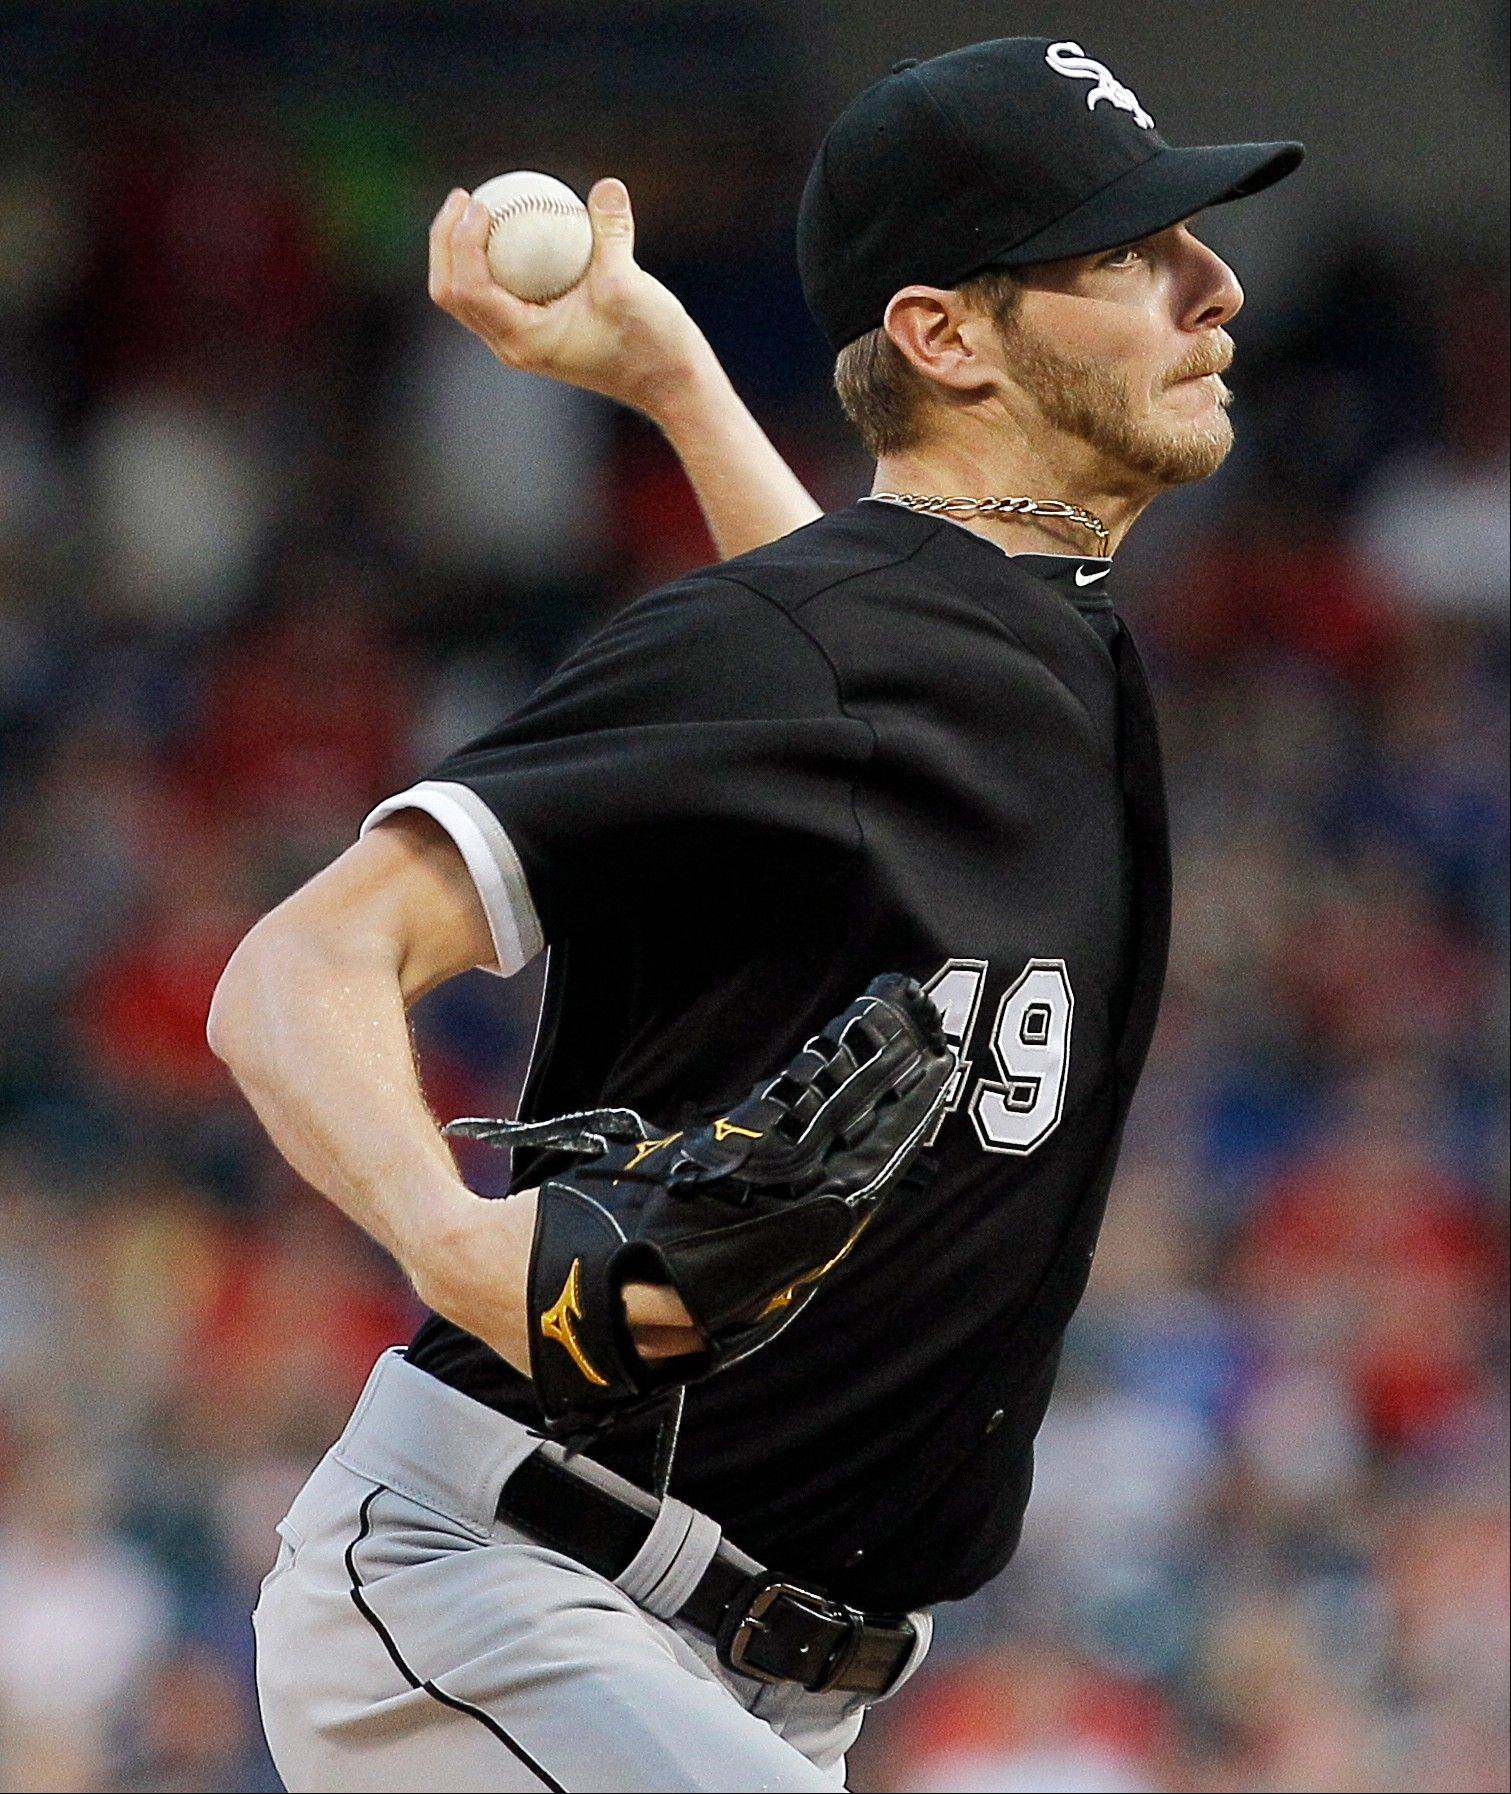 Chicago White Sox starting pitcher Chris Sale (49) throws in the first inning of a baseball game against the Texas Rangers in Arlington, Texas, Wednesday, May 1, 2013.